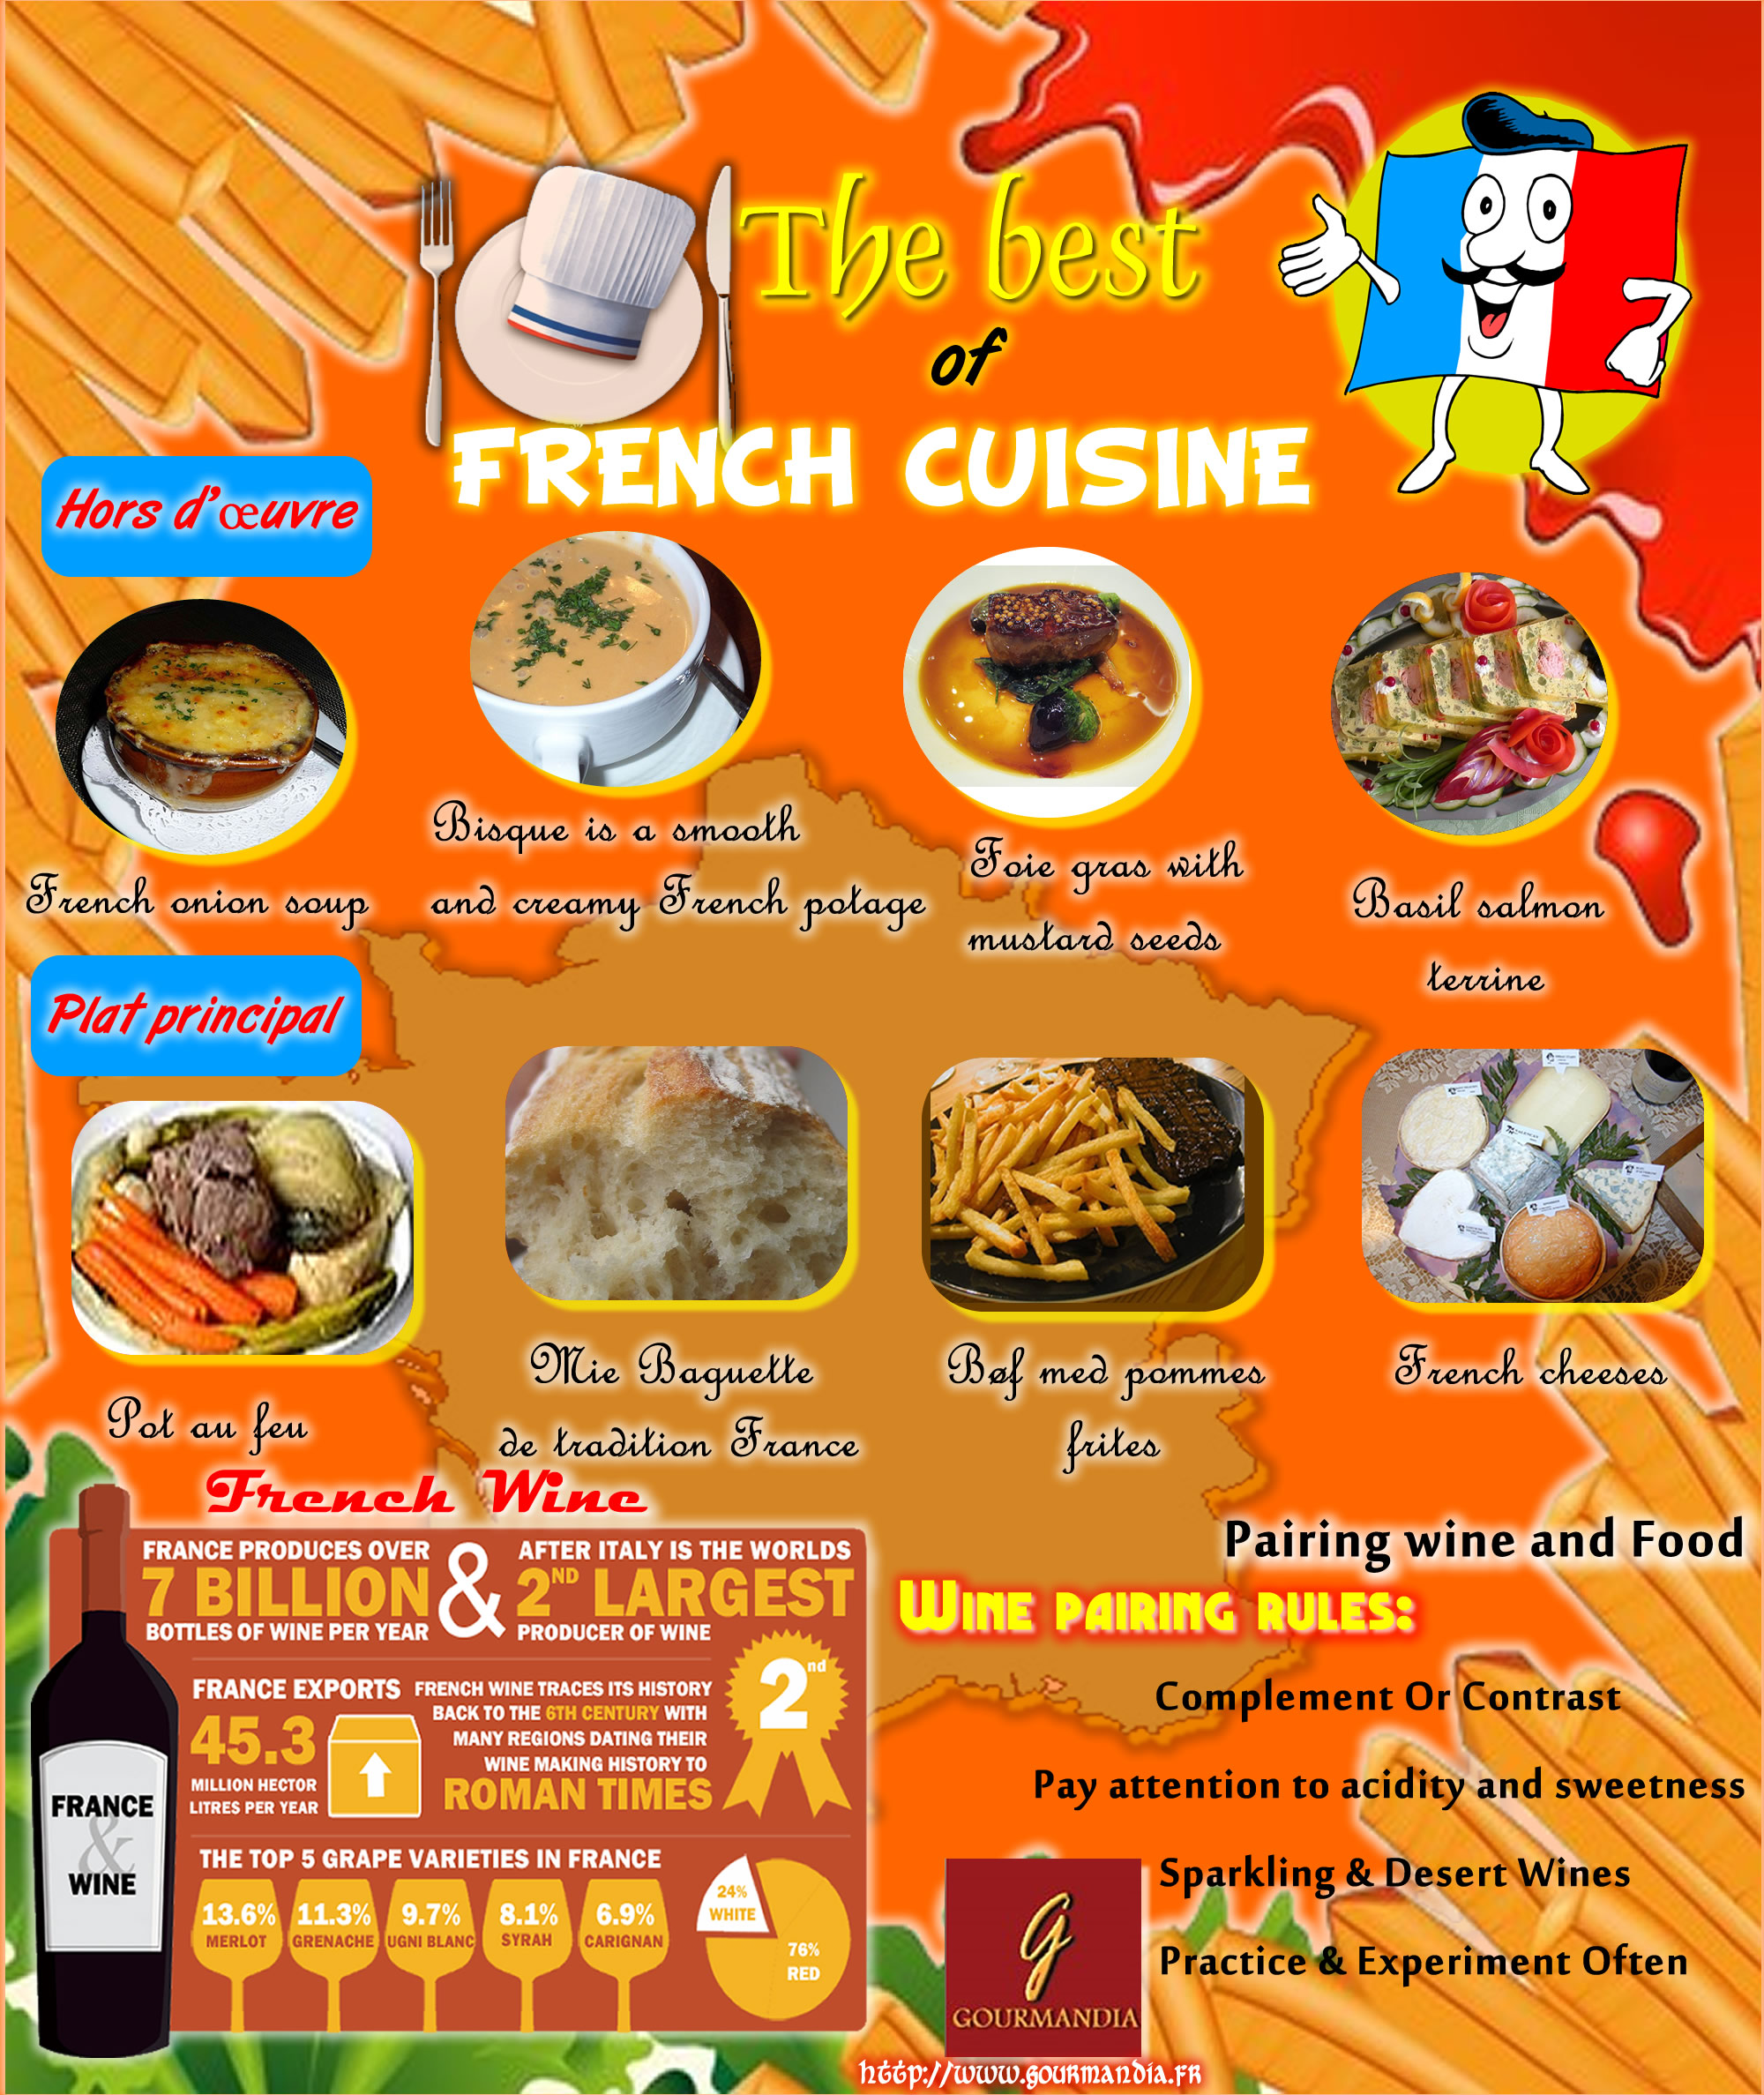 The best of french cuisine infographic french cuisine - Best of french cuisine ...